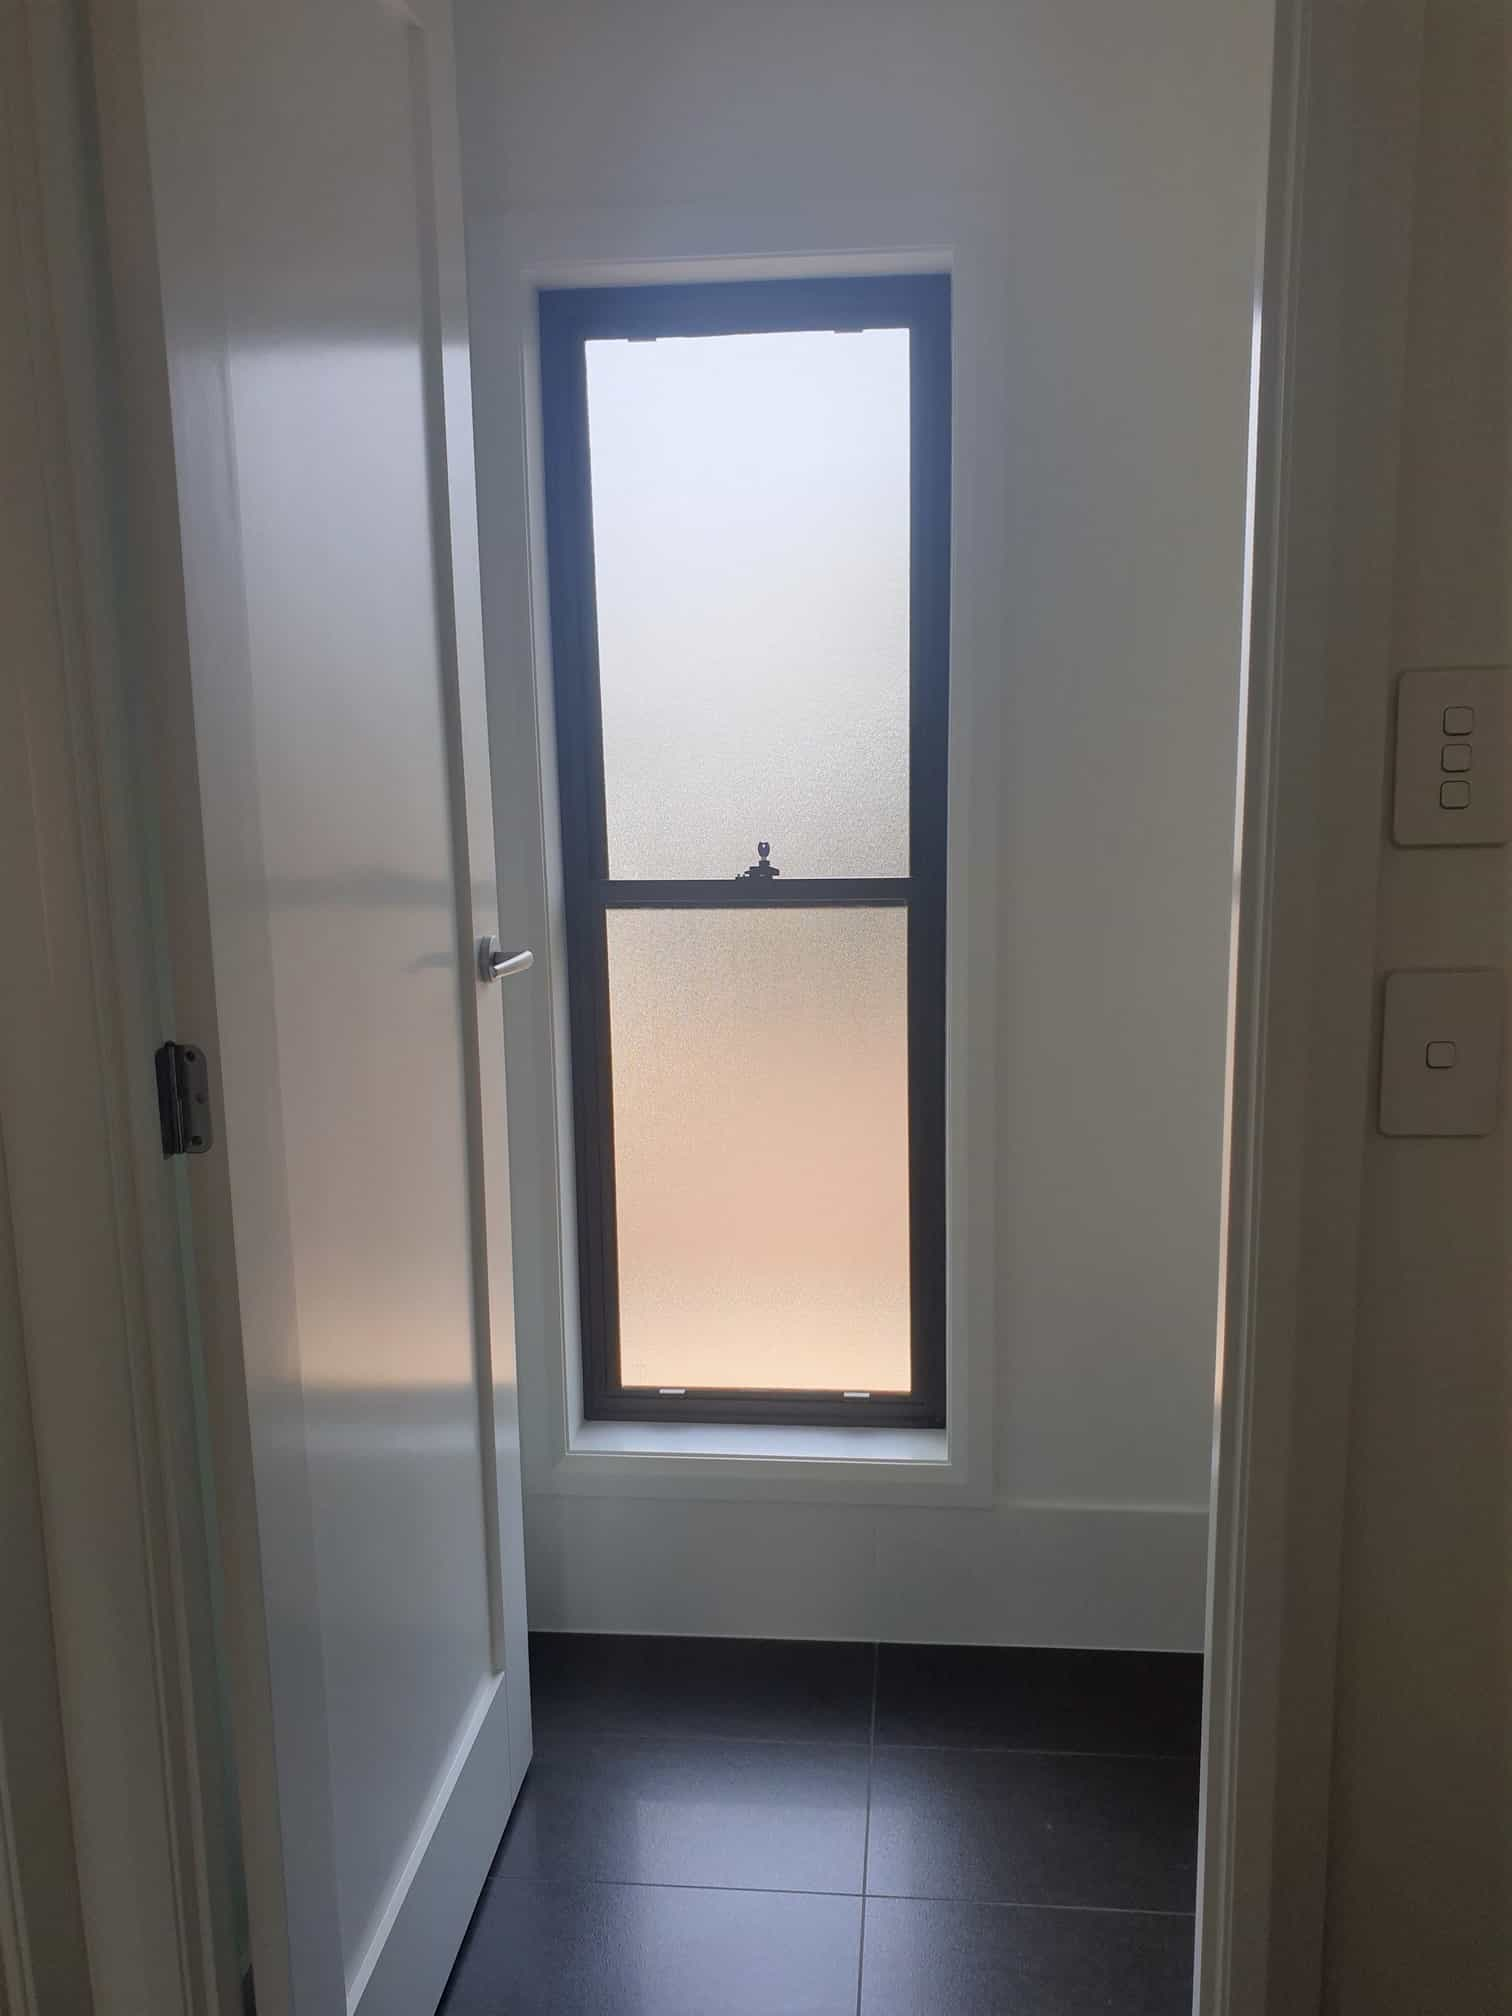 clear guard window and screen